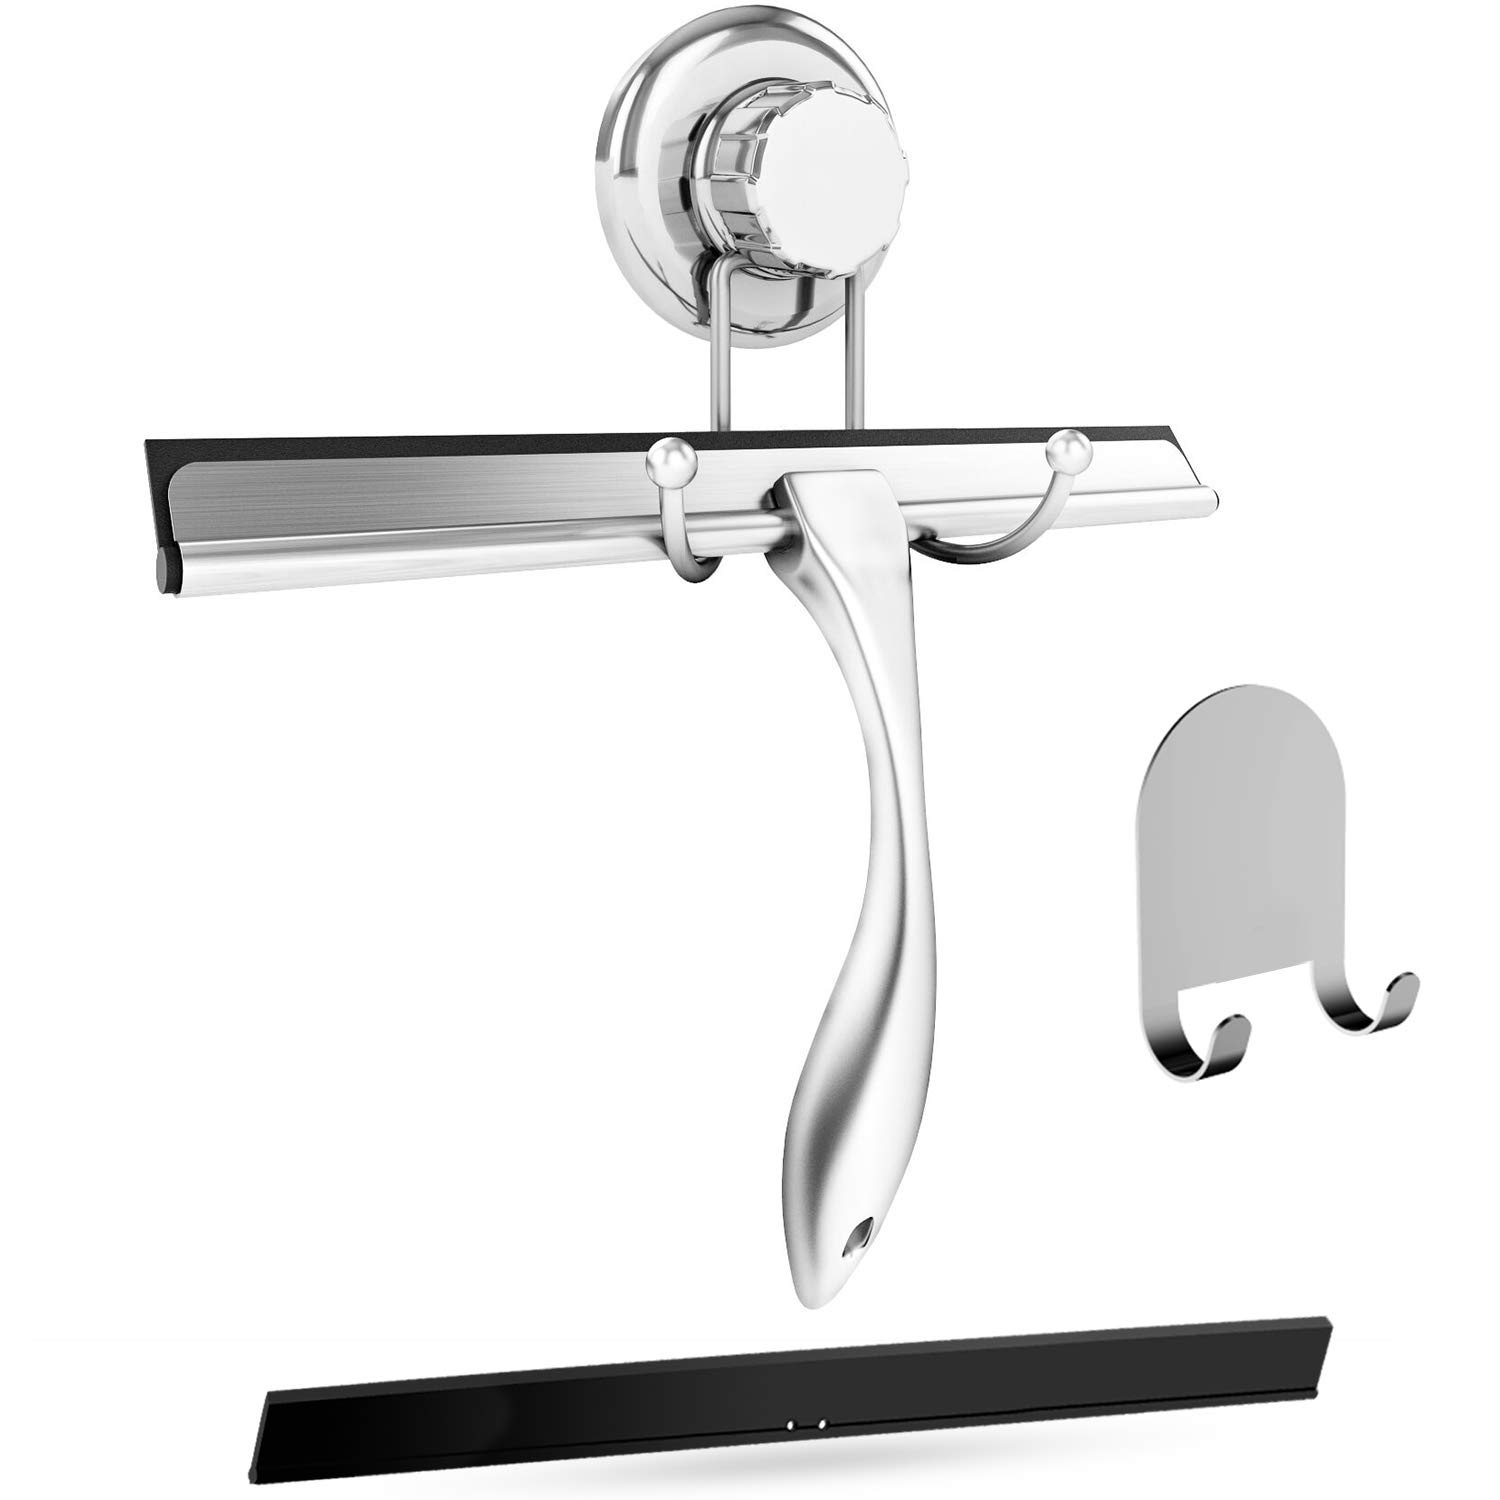 6. HASKO Chrome-Plated Shower Squeegee